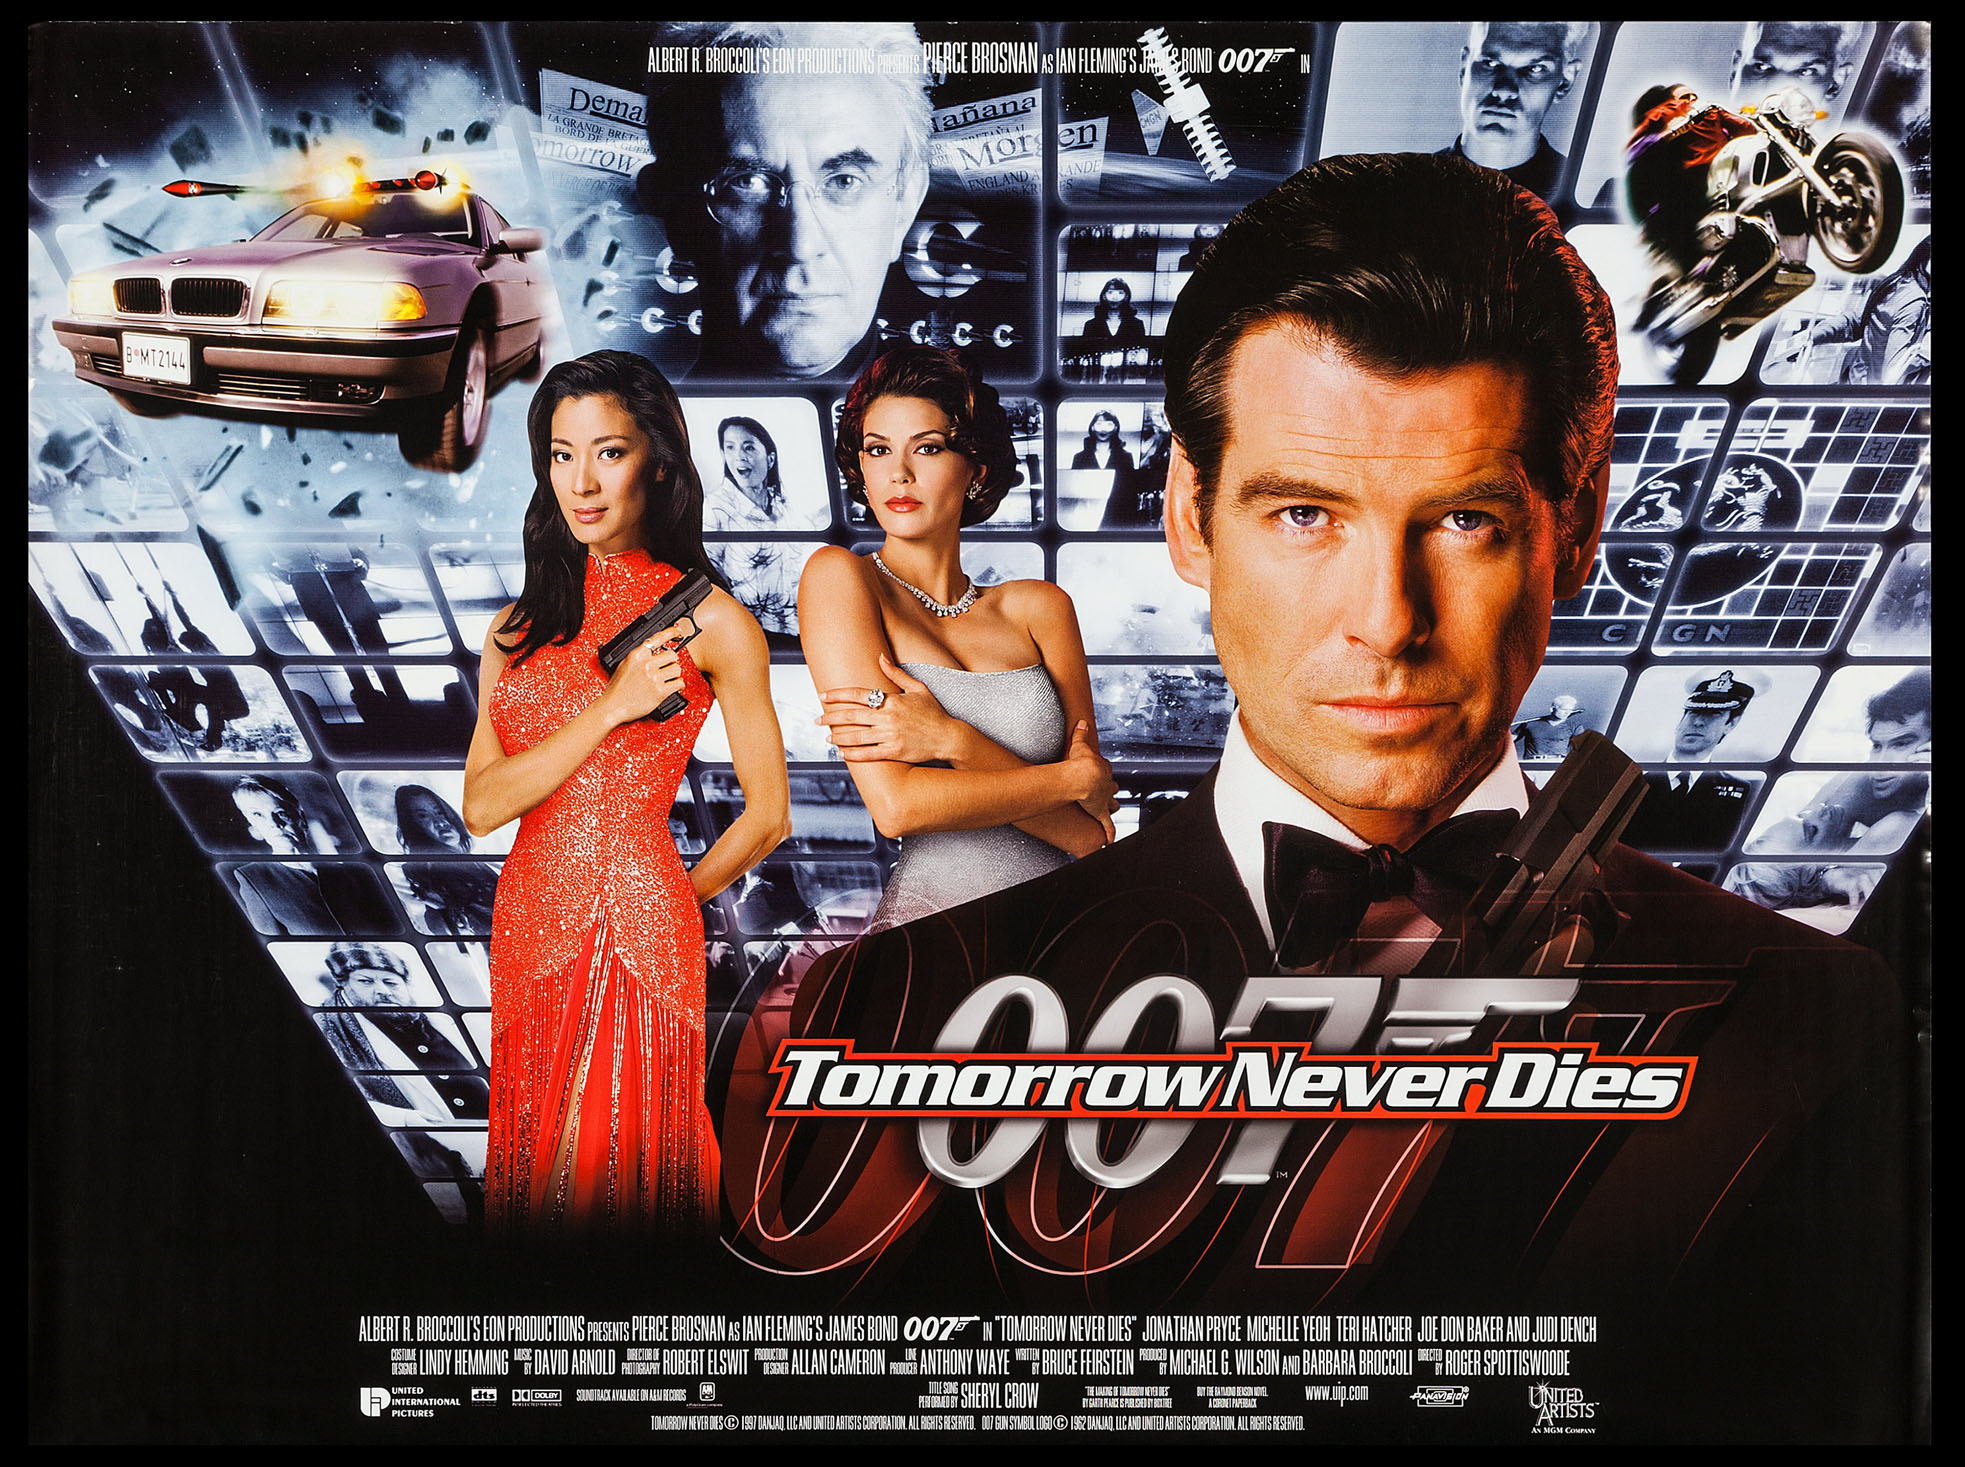 TOMORROW NEVER DIES (James Bond) @ FilmPosters.com